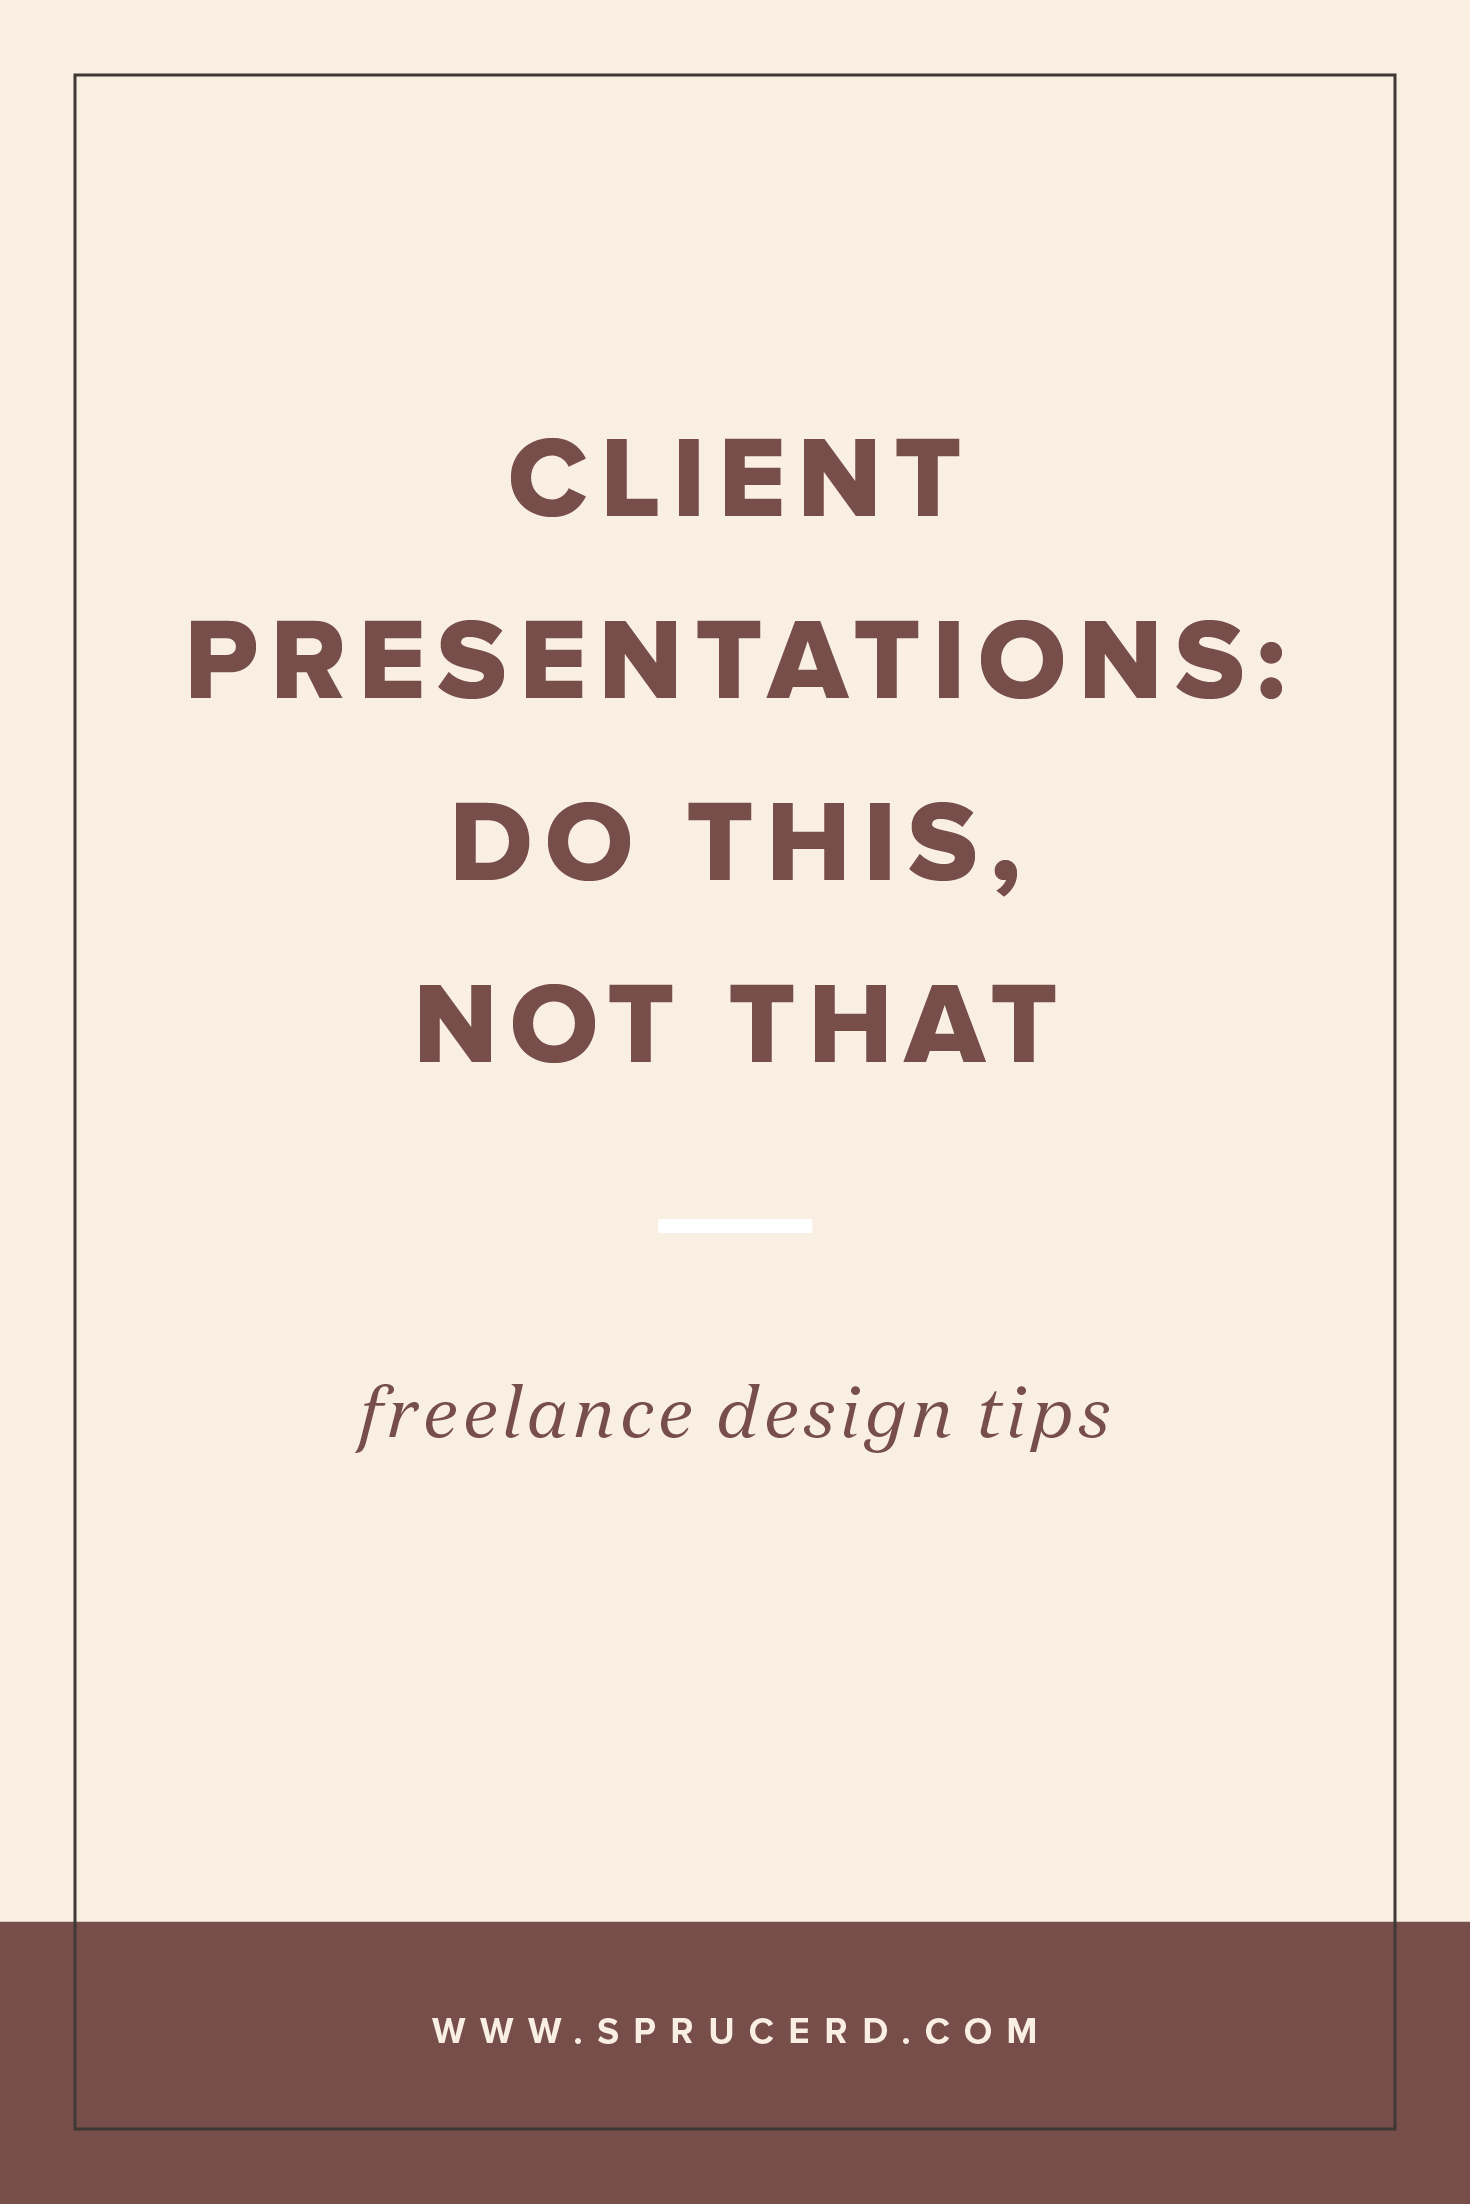 To create a winning client branding presentation, there's a few tips to follow. I've got a fun do this, not that series that shows how to get zero revisions from client proofs! Head to the blog to check out if you're doing these in your client presentation process. #freelance #designer #graphicdesign #branding